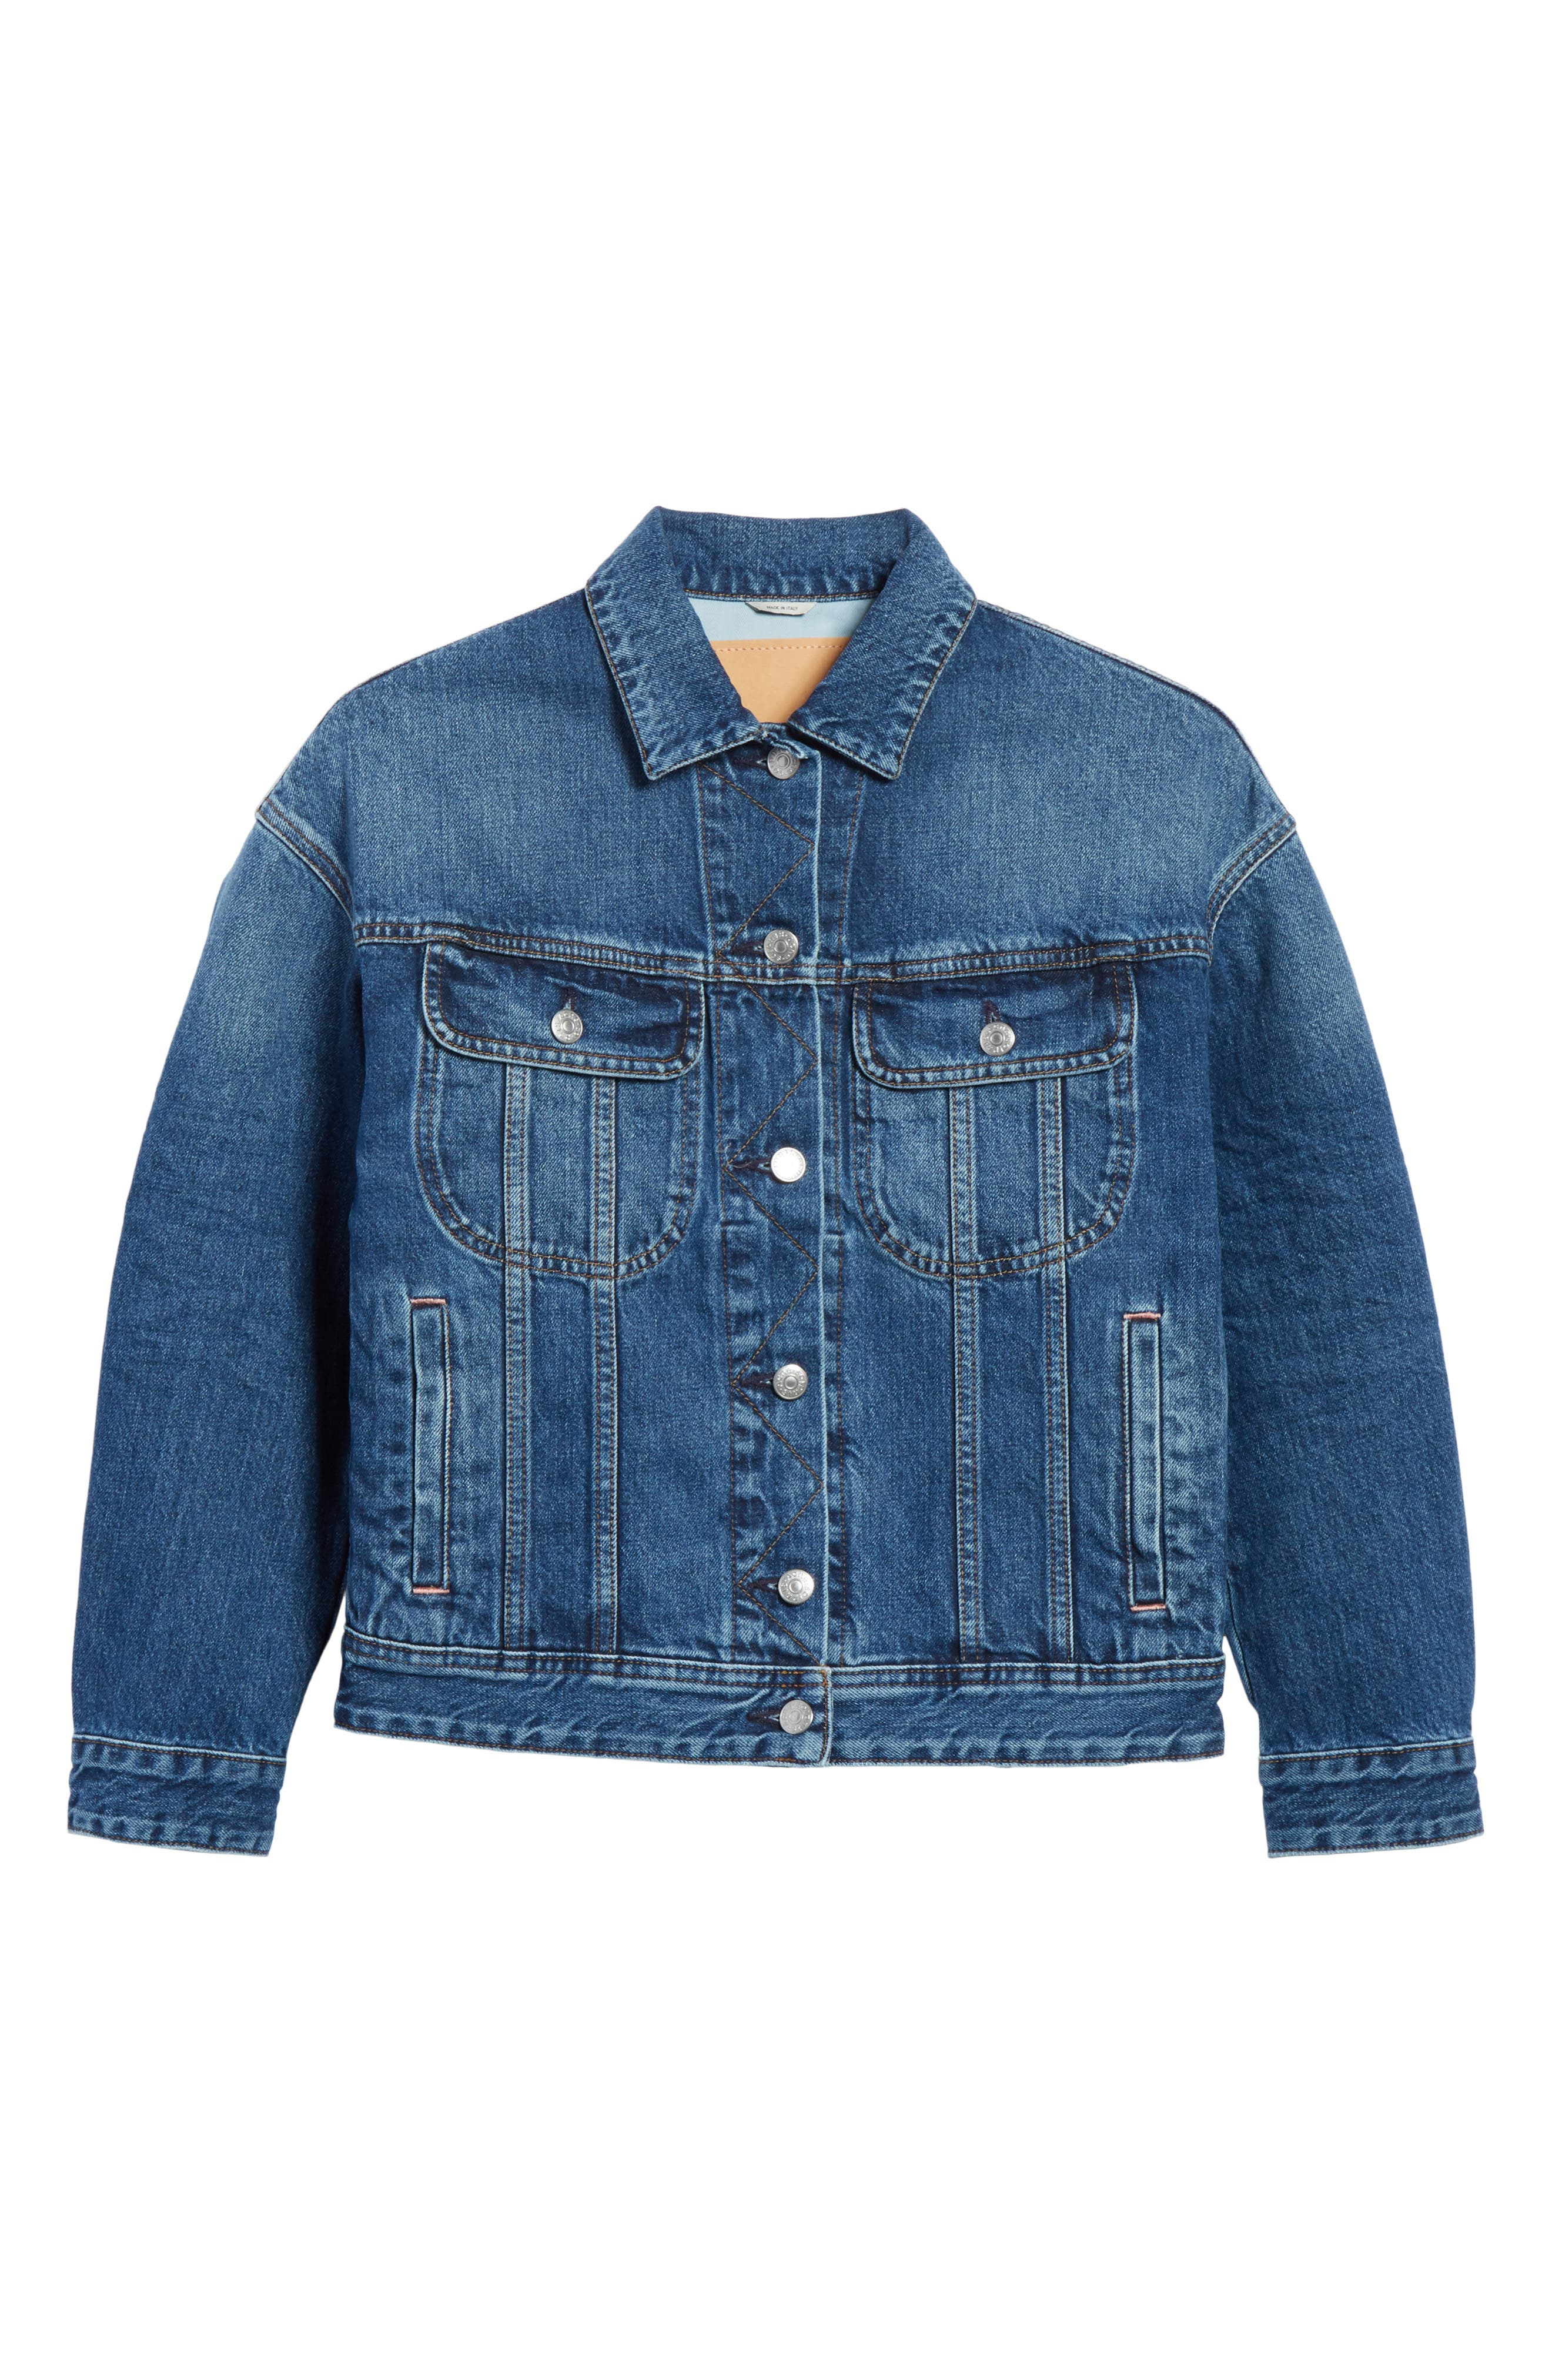 Lamp Denim Jacket,                             Alternate thumbnail 5, color,                             400